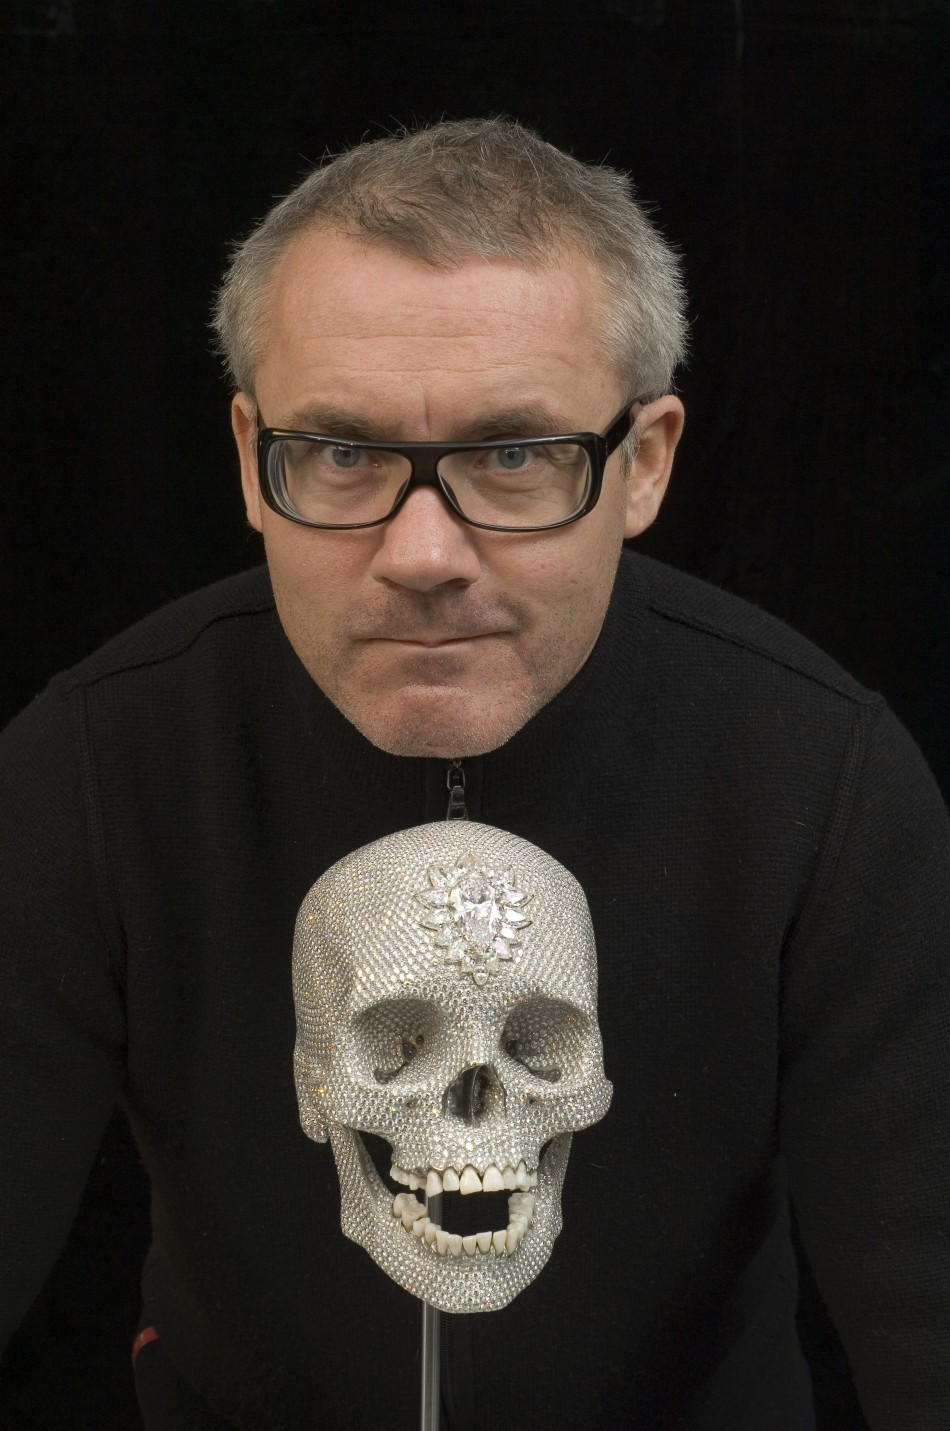 damien hirst to open first public gallery with over 2 000